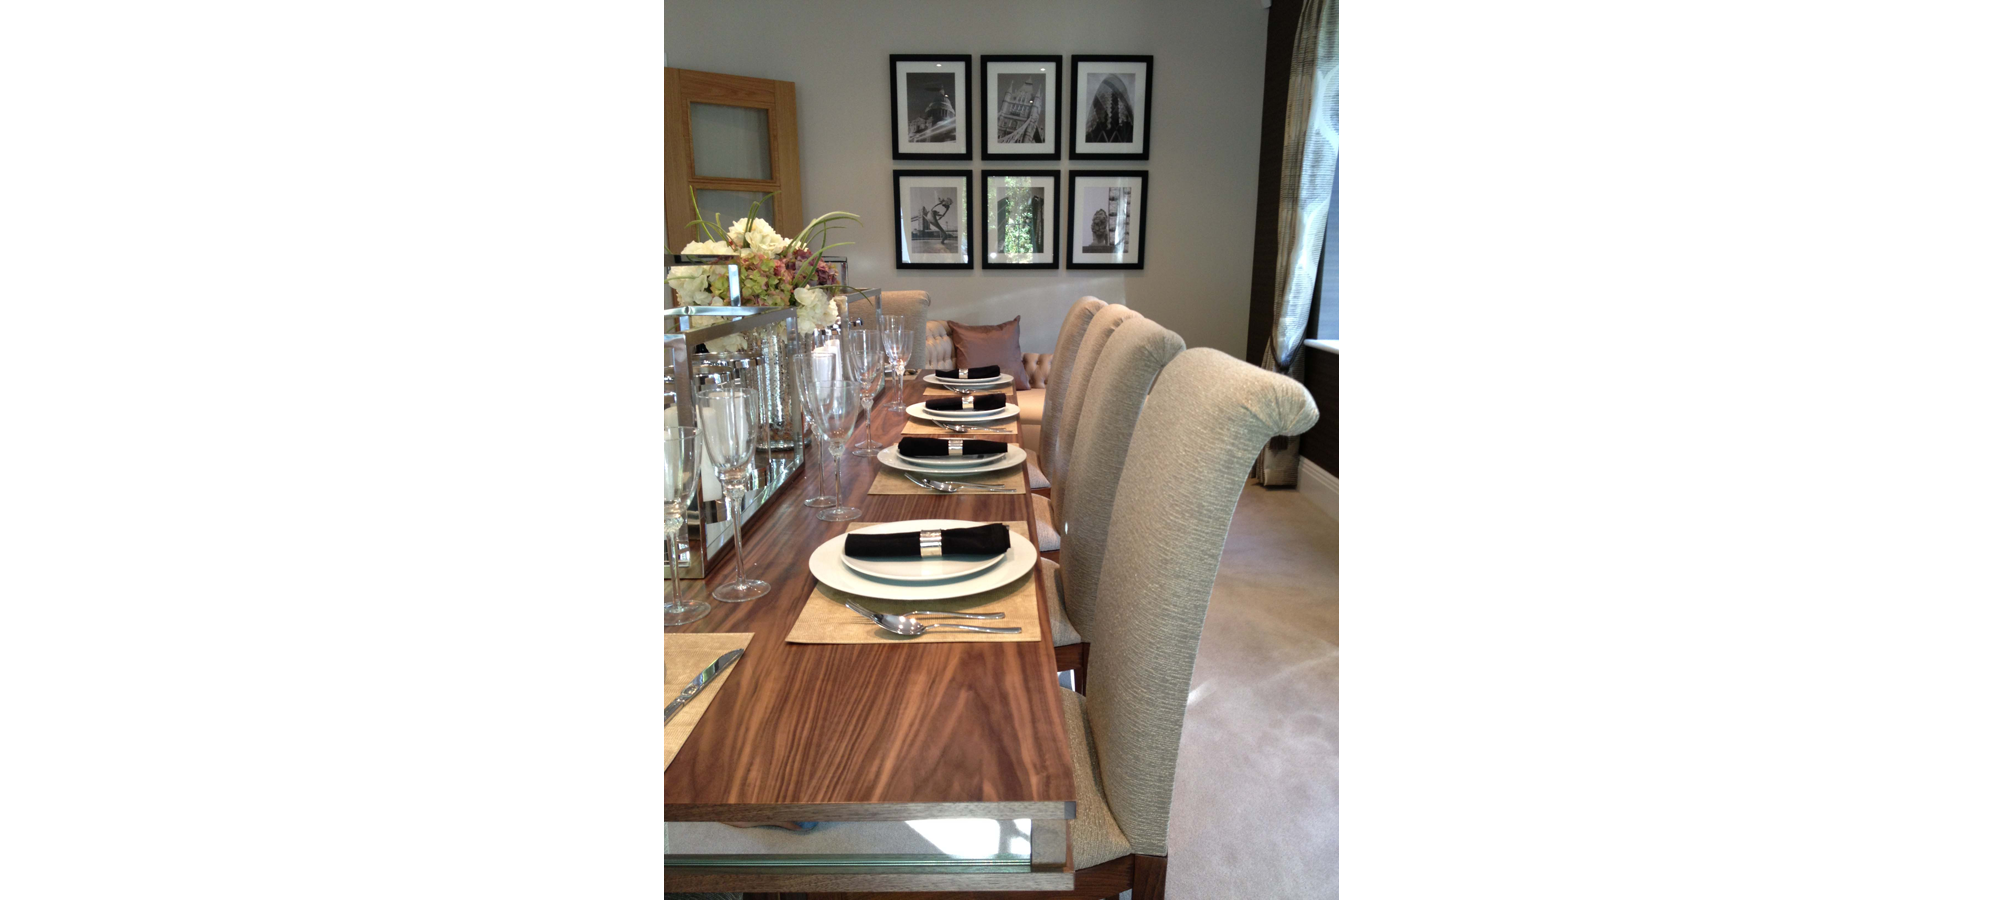 Walnut Dining Table with Mirror Surround